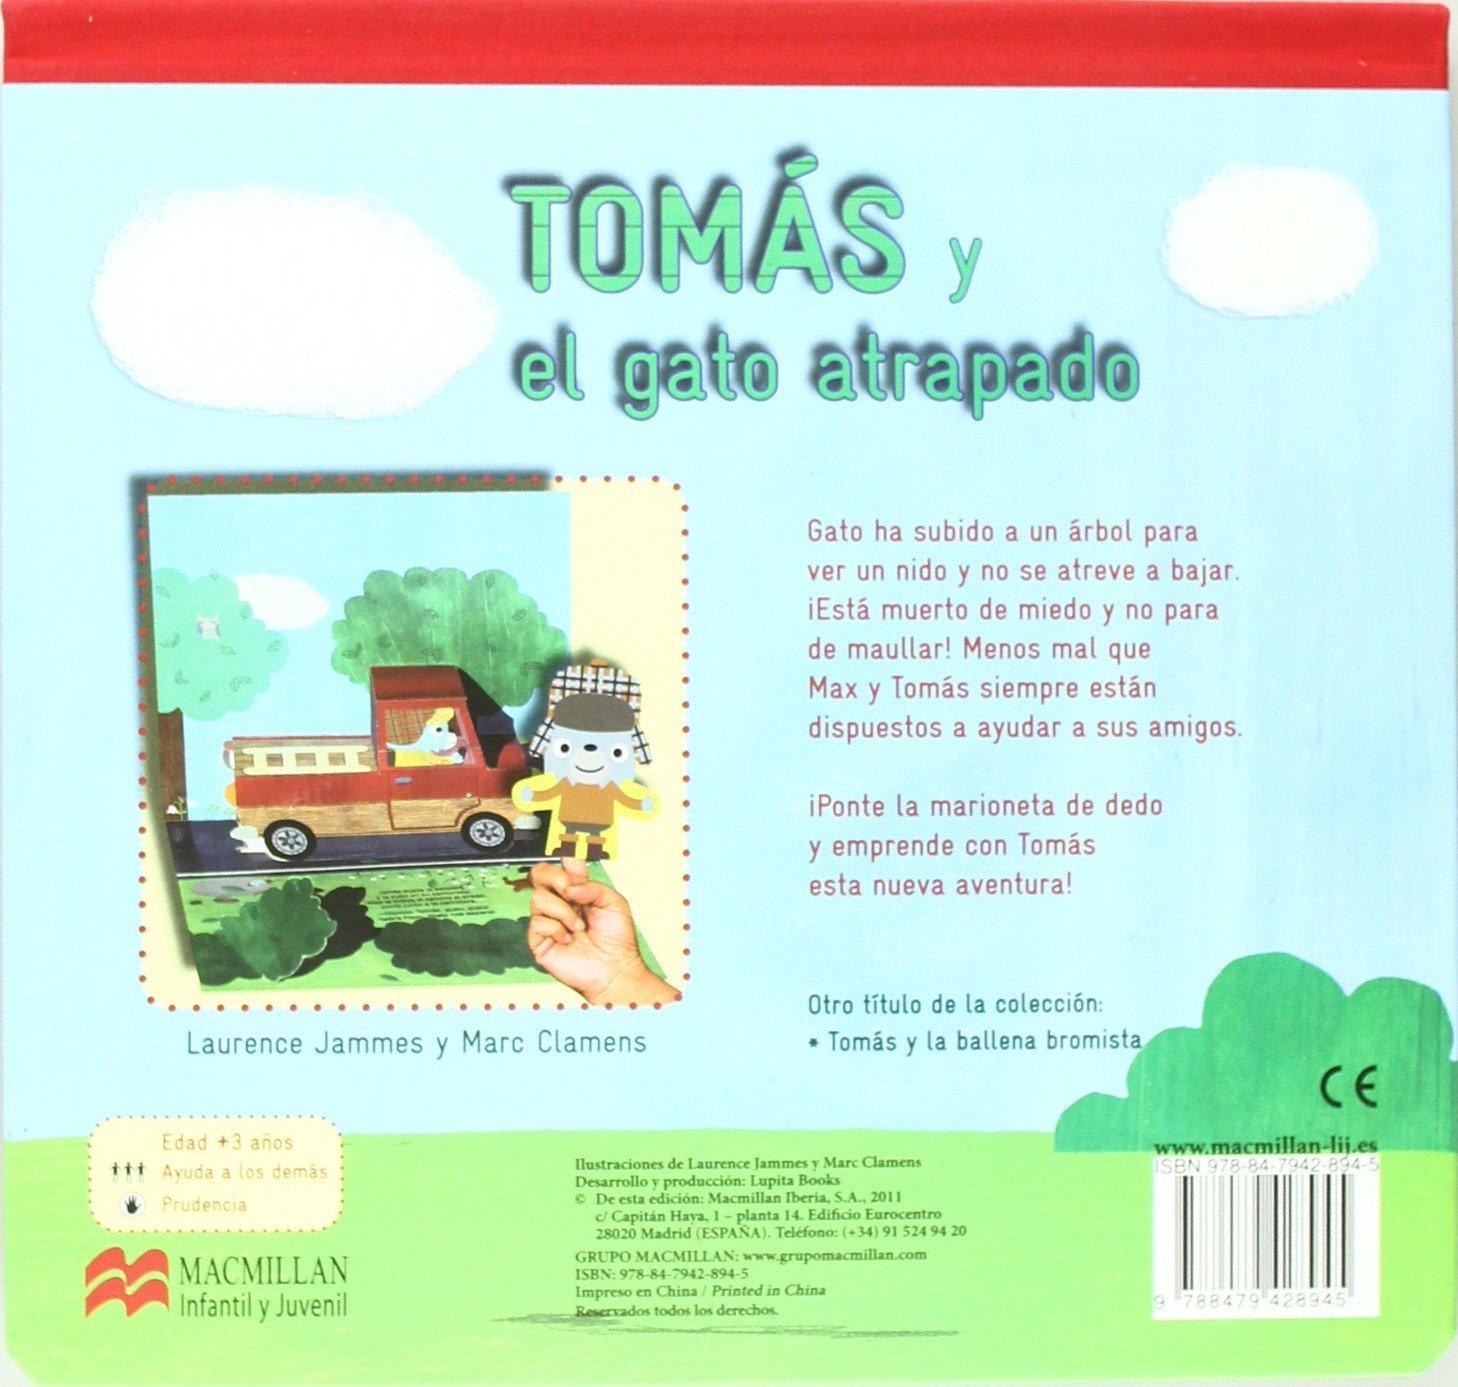 Amazon.com: Tomás y el gato atrapado (Tomás series) (Spanish Edition) (9788479428945): Laurence Jammes: Books